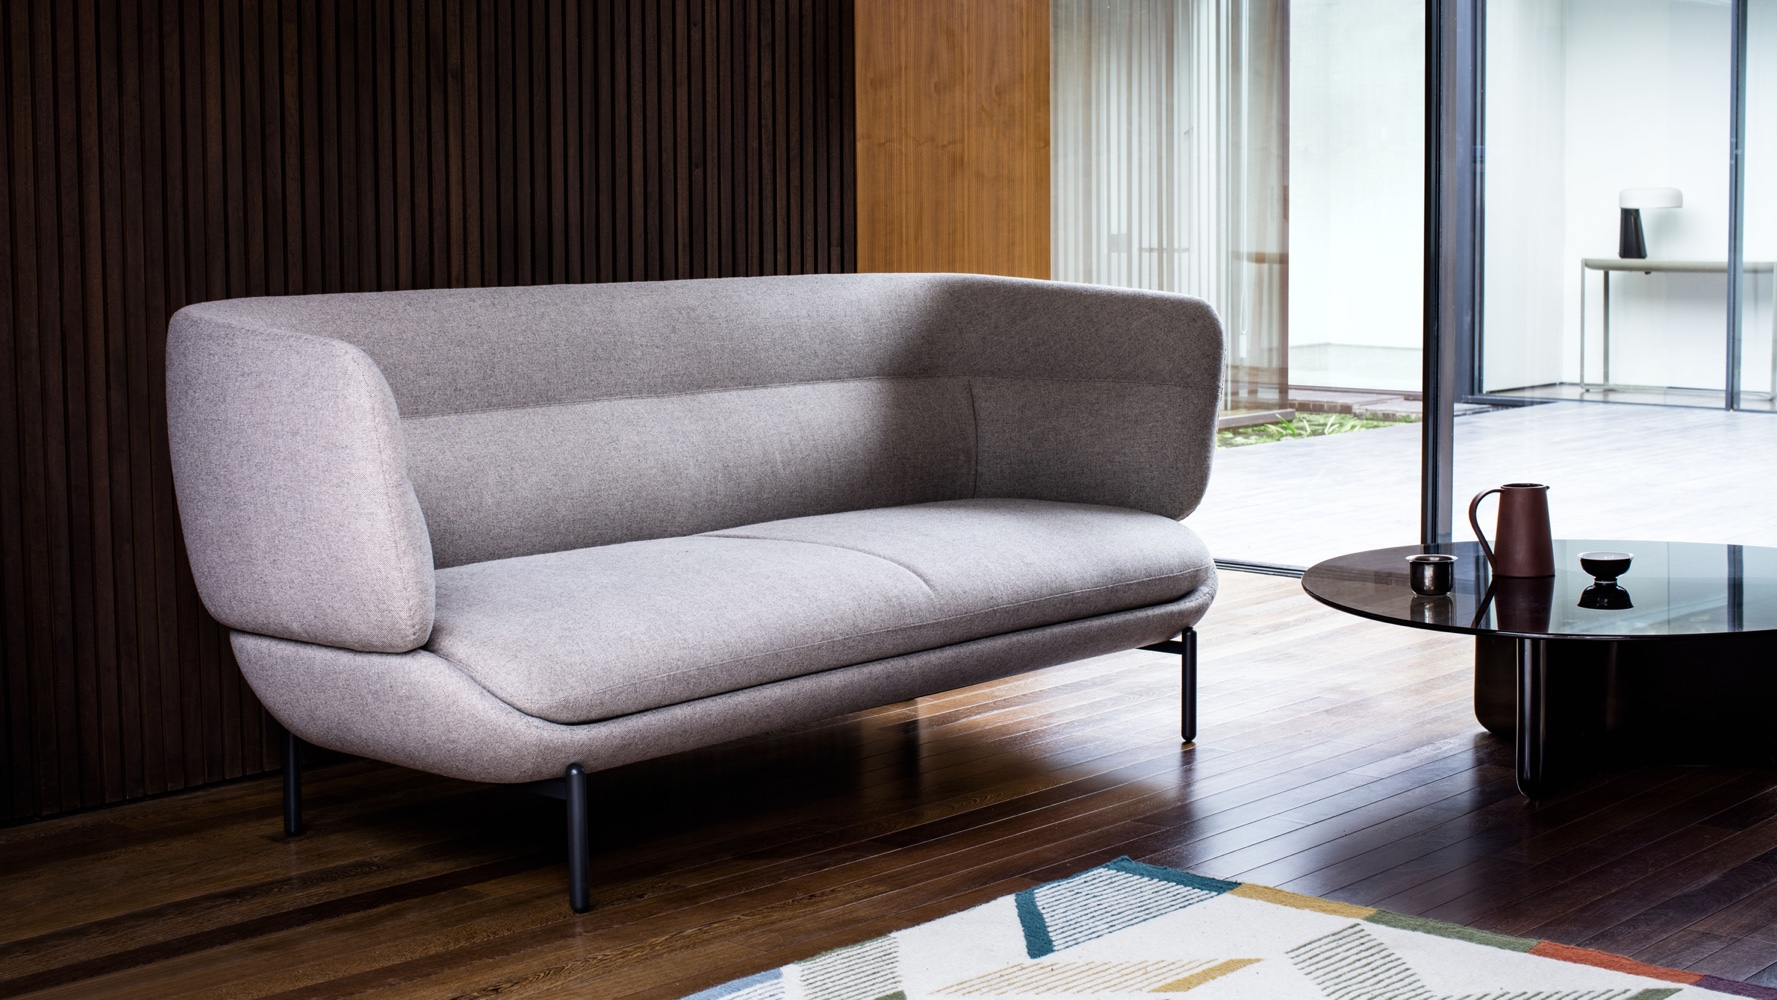 Pondok sofa for John Lewis.